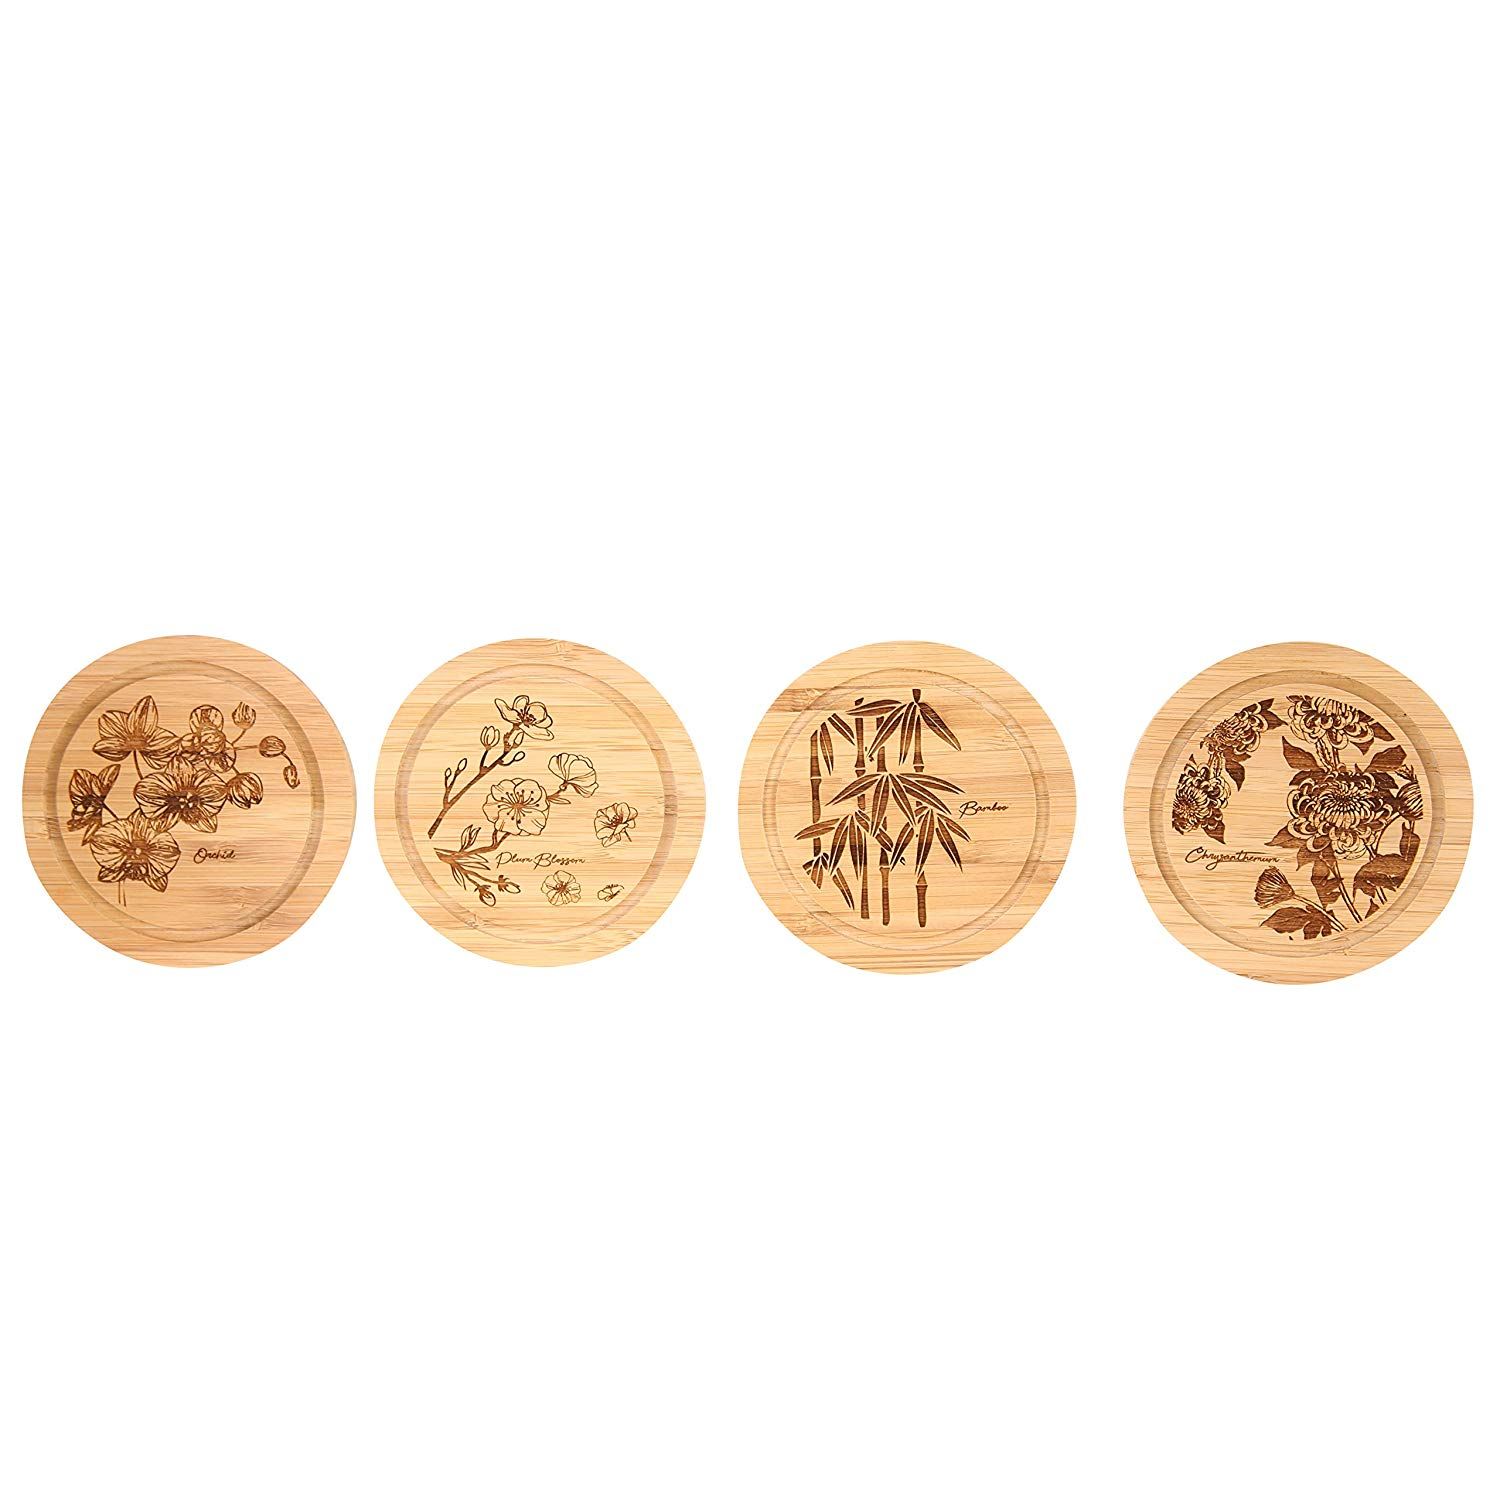 Vastigo Bamboo Round Coasters w/Flower Design - Chrysanthemum, Bamboo, Plum Blossom, and Orchid